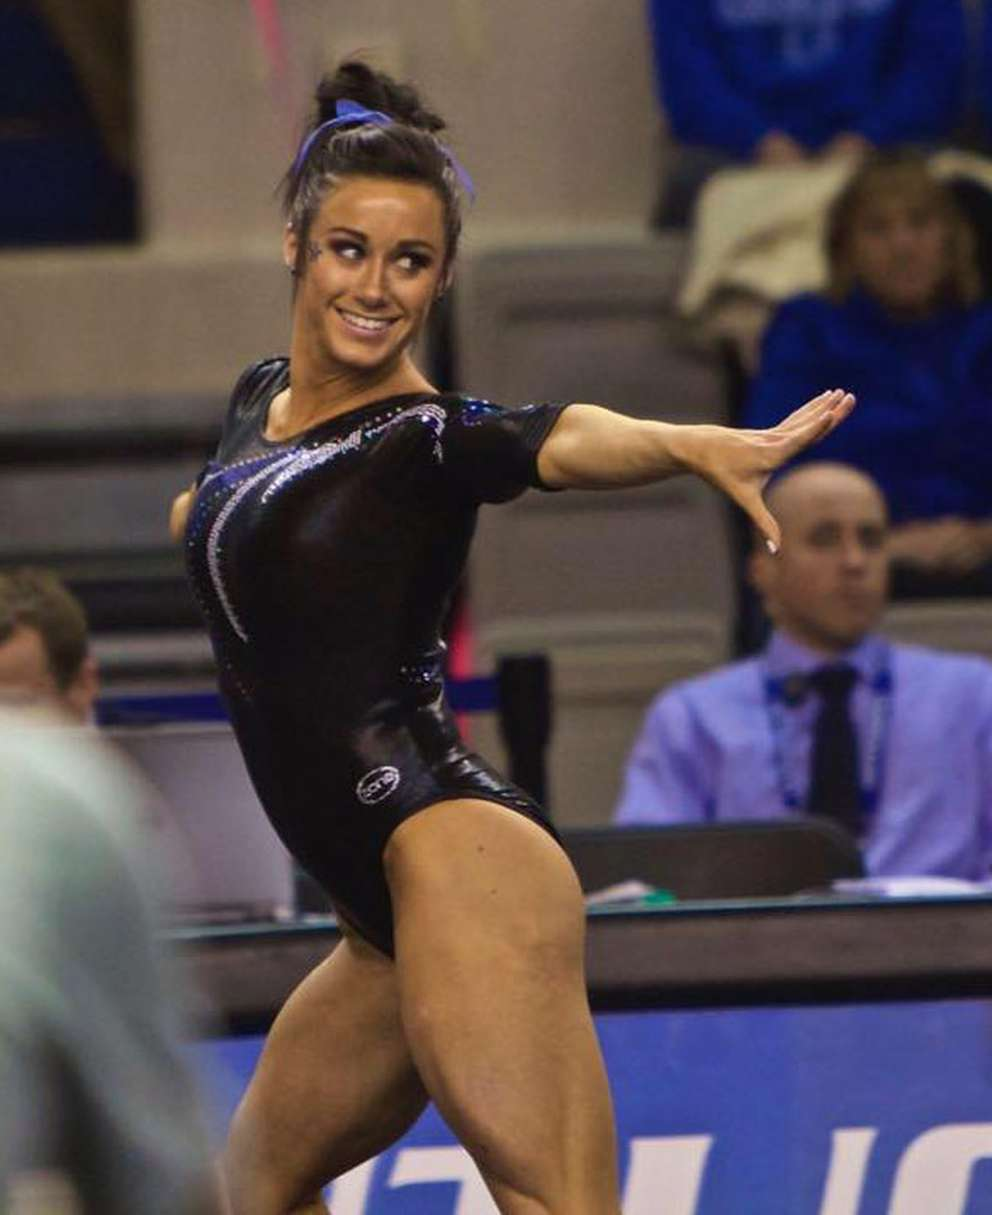 Shelby Hilton started gymnastics in St. Petersburg when she was 5.